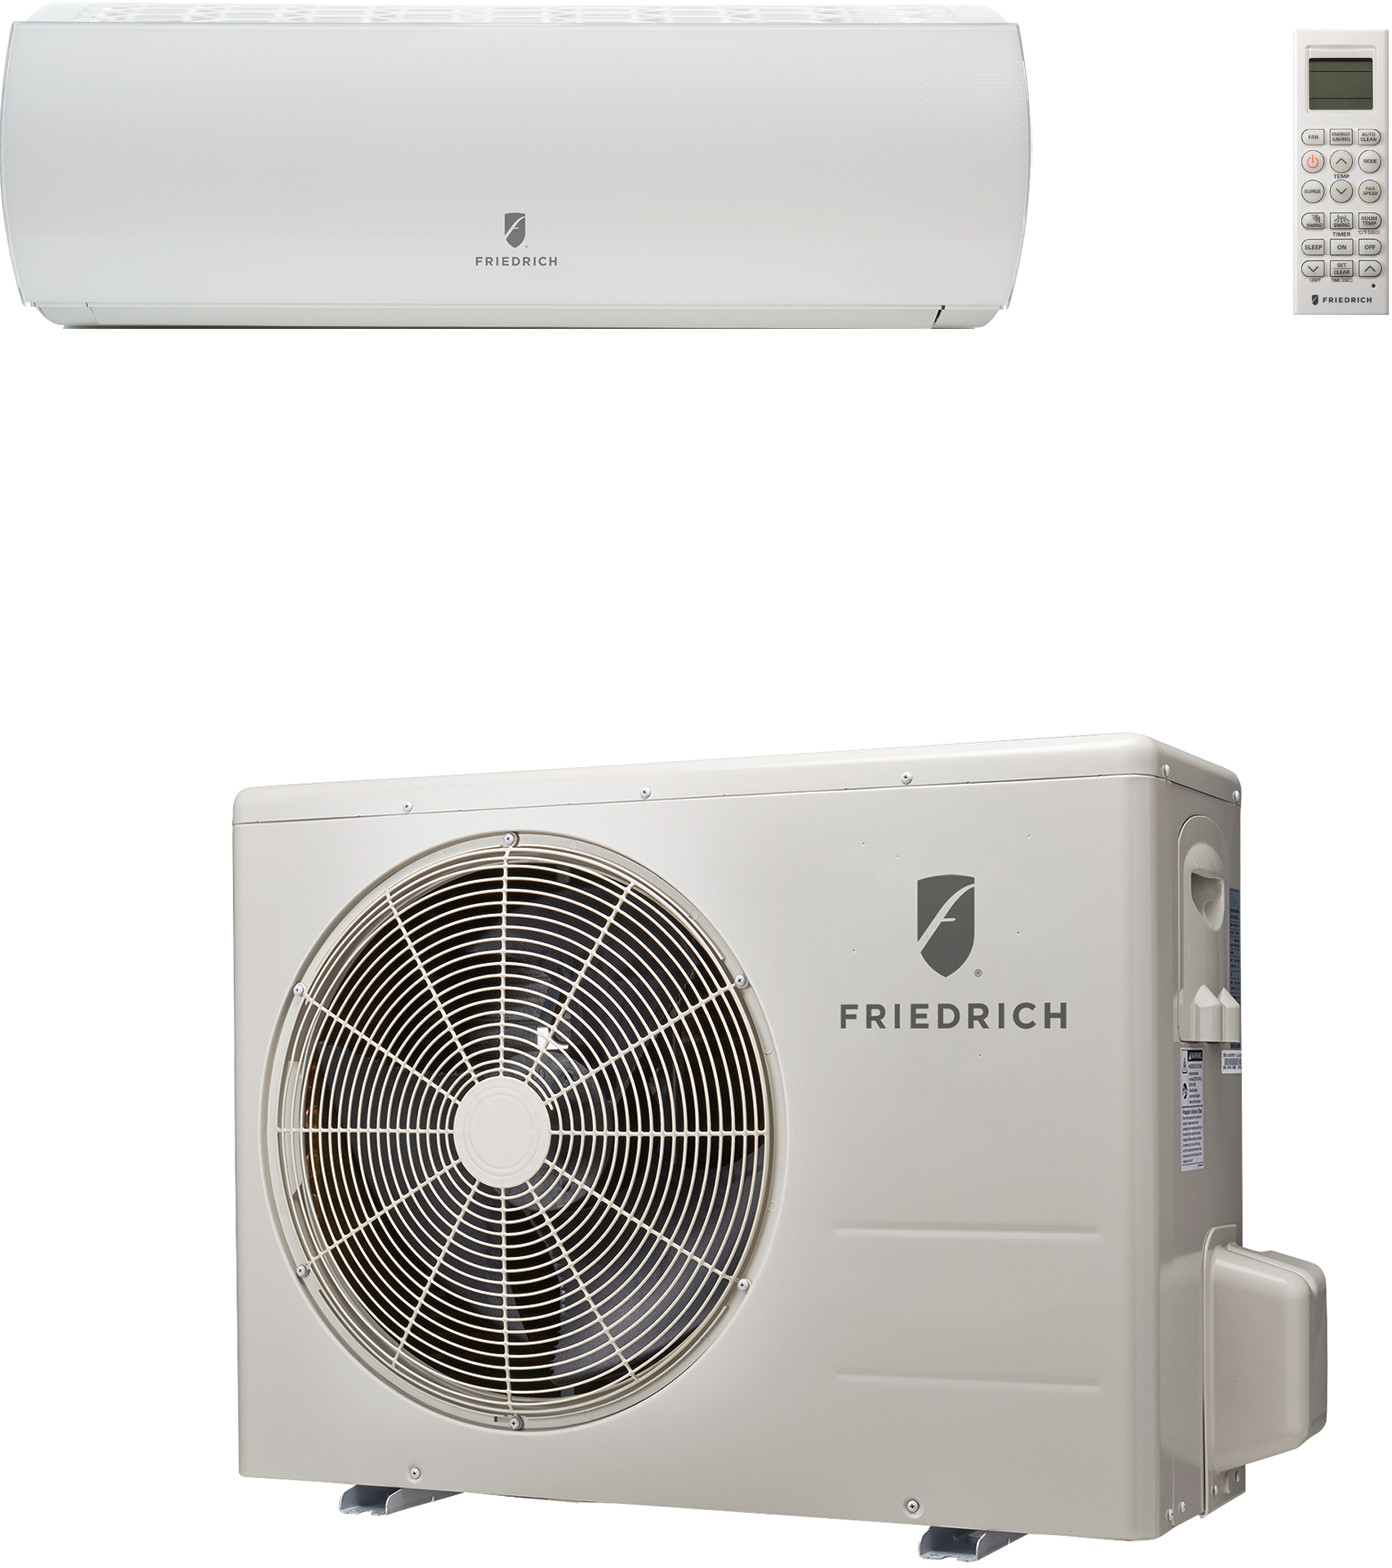 Friedrich 12,000 BTU Single Zone Ductless Split System HM12YJ